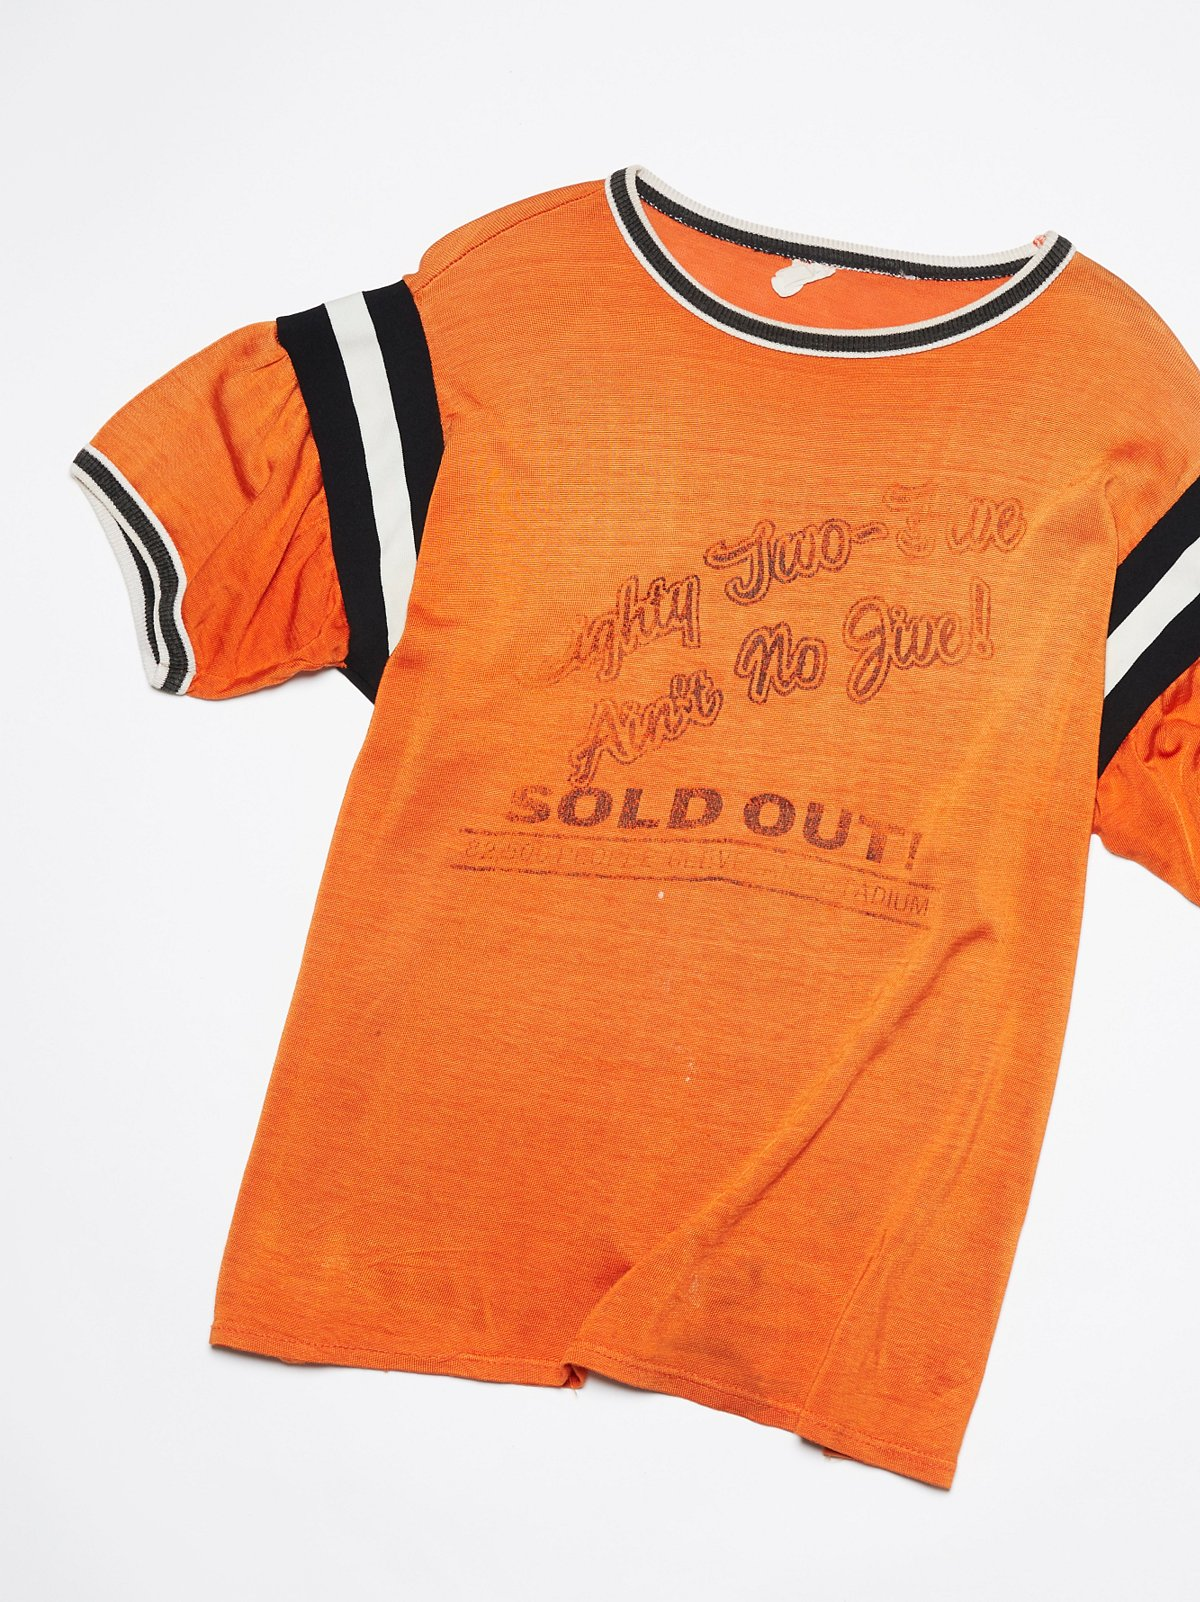 Vintage 1970s Sold Out Tee